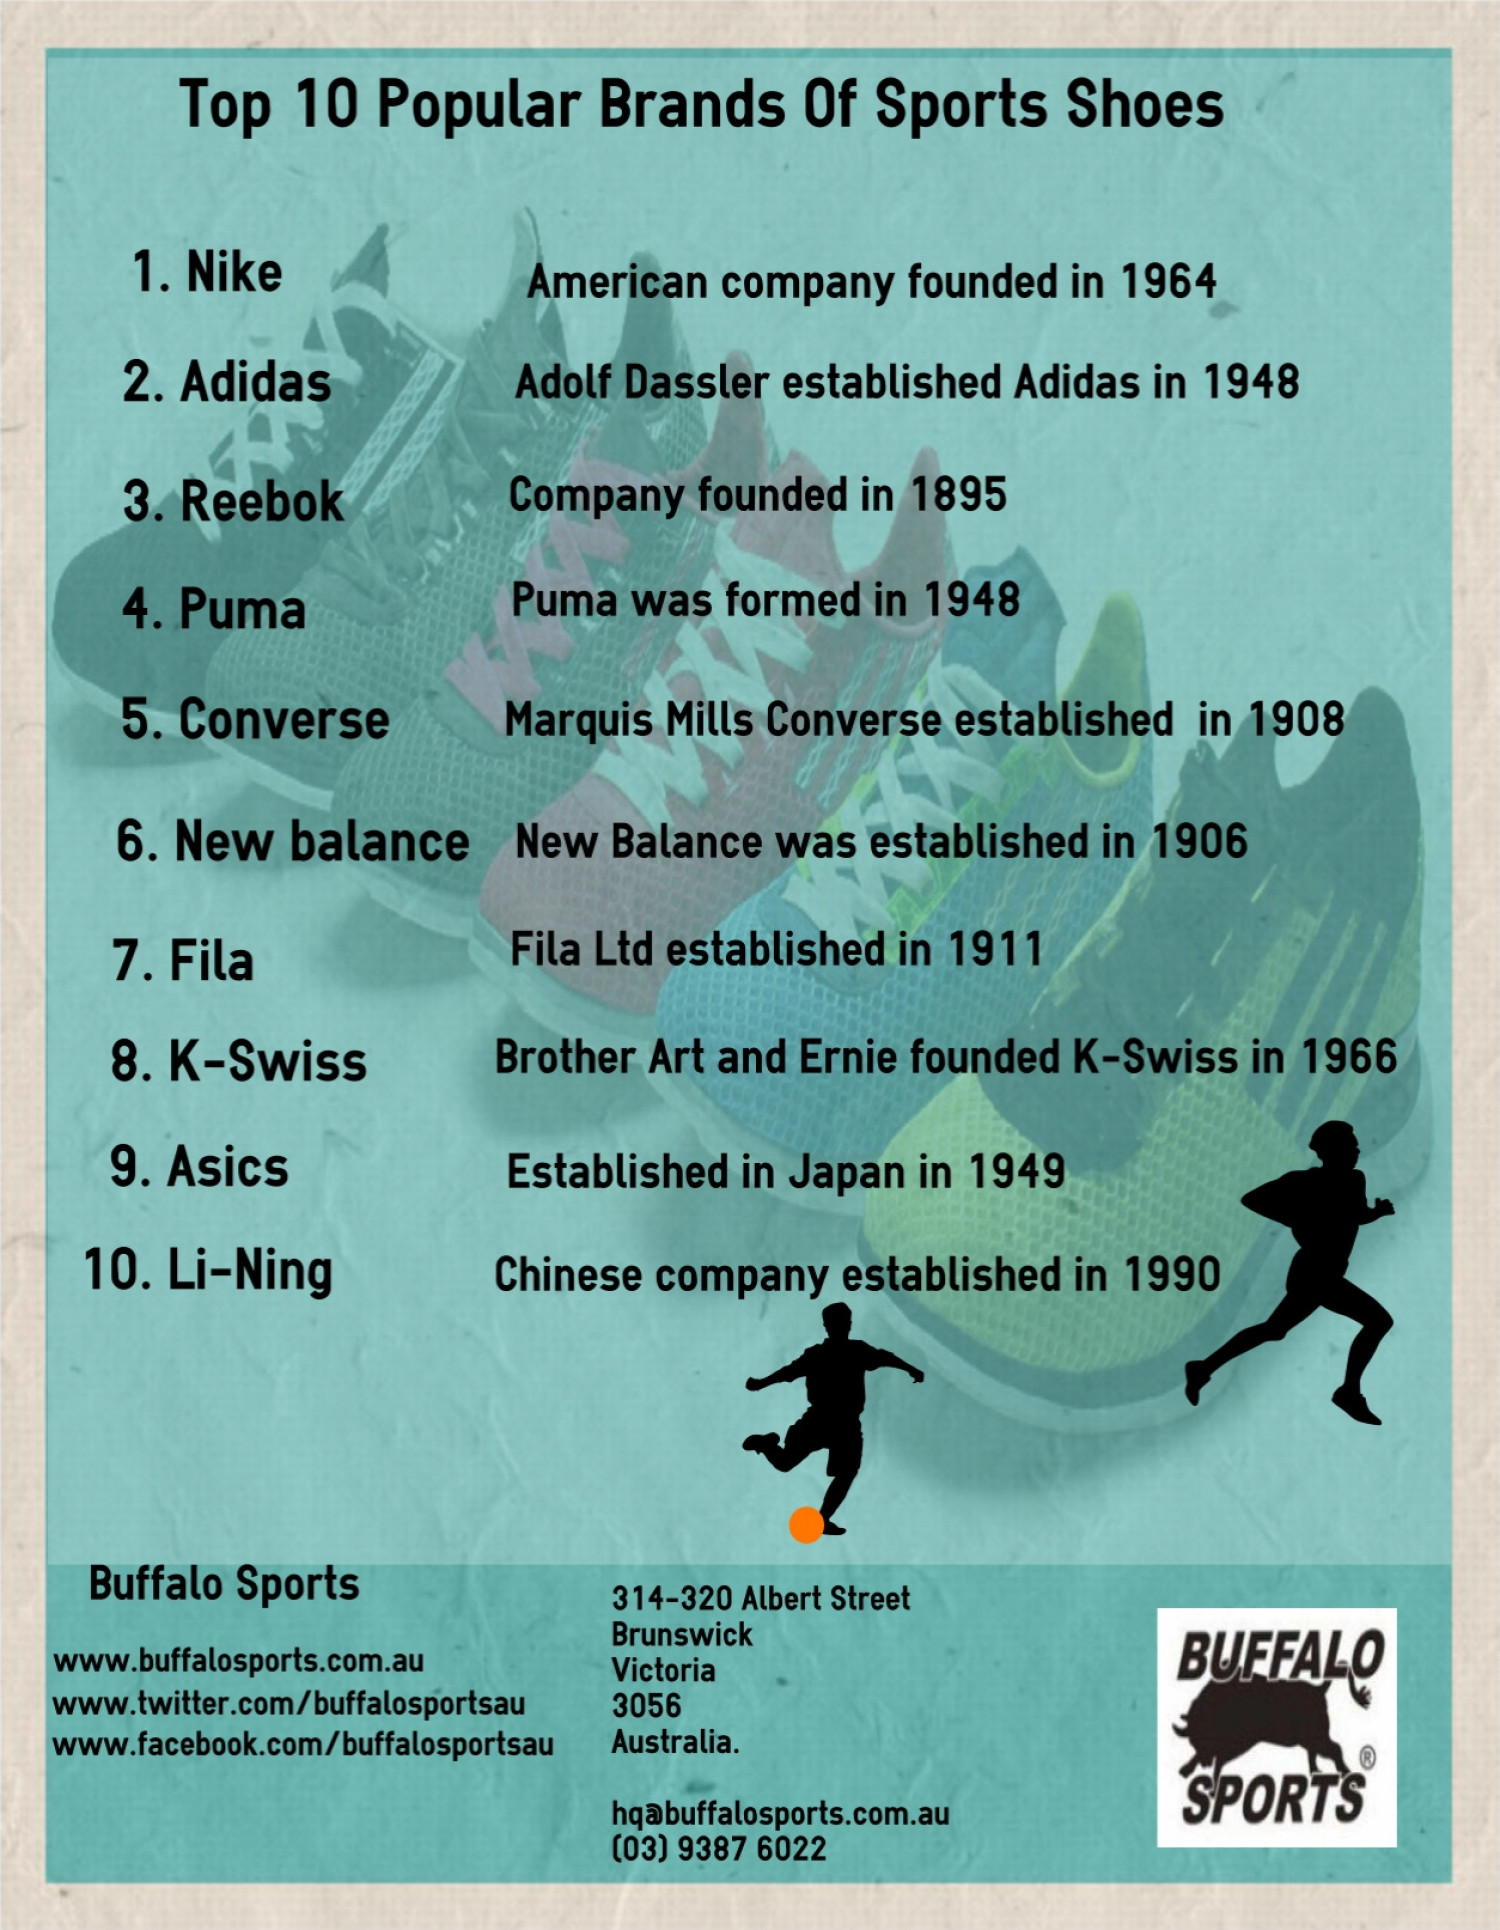 top 10 popular brands of sports shoes visual ly